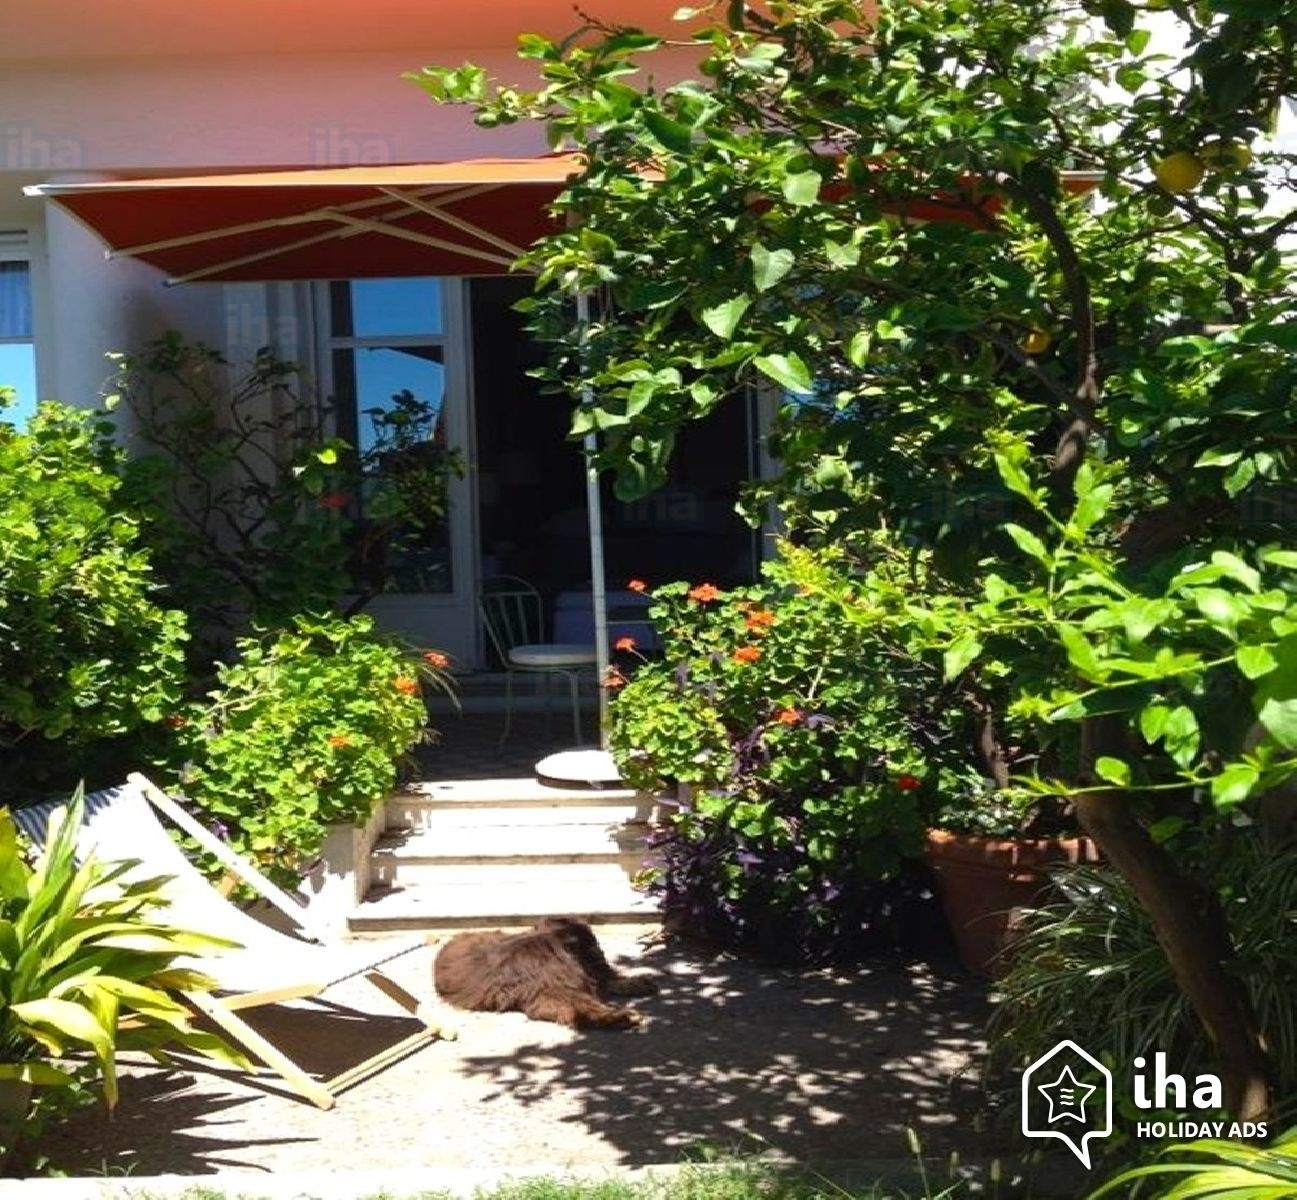 Flat-Apartments For Rent In A Palace In Nice Iha 76423 regarding Garden On Flat Apartment